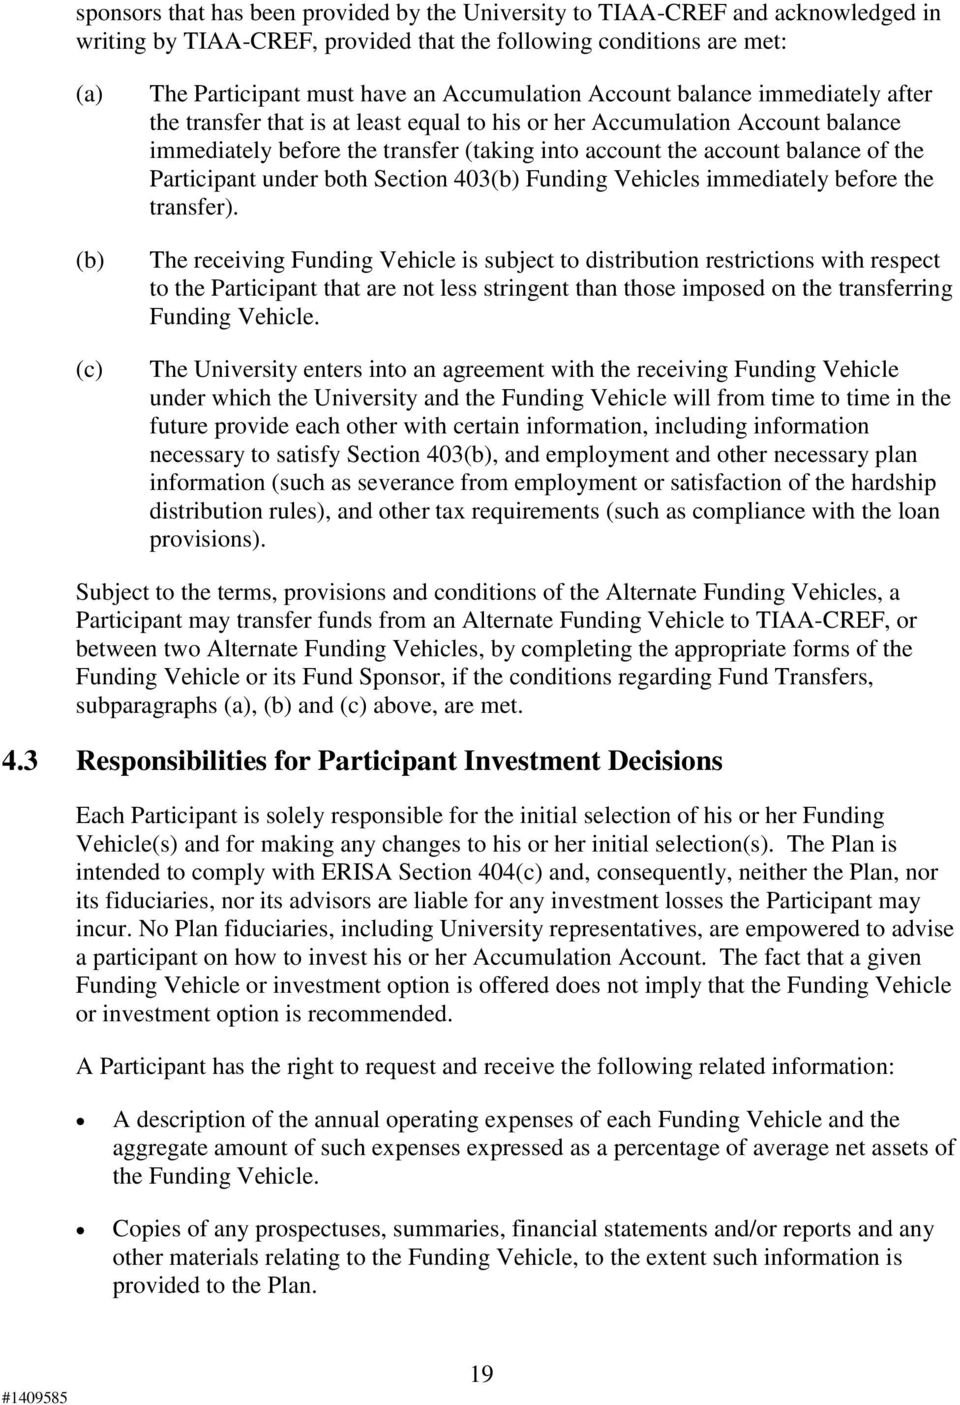 of the Participant under both Section 403(b) Funding Vehicles immediately before the transfer).